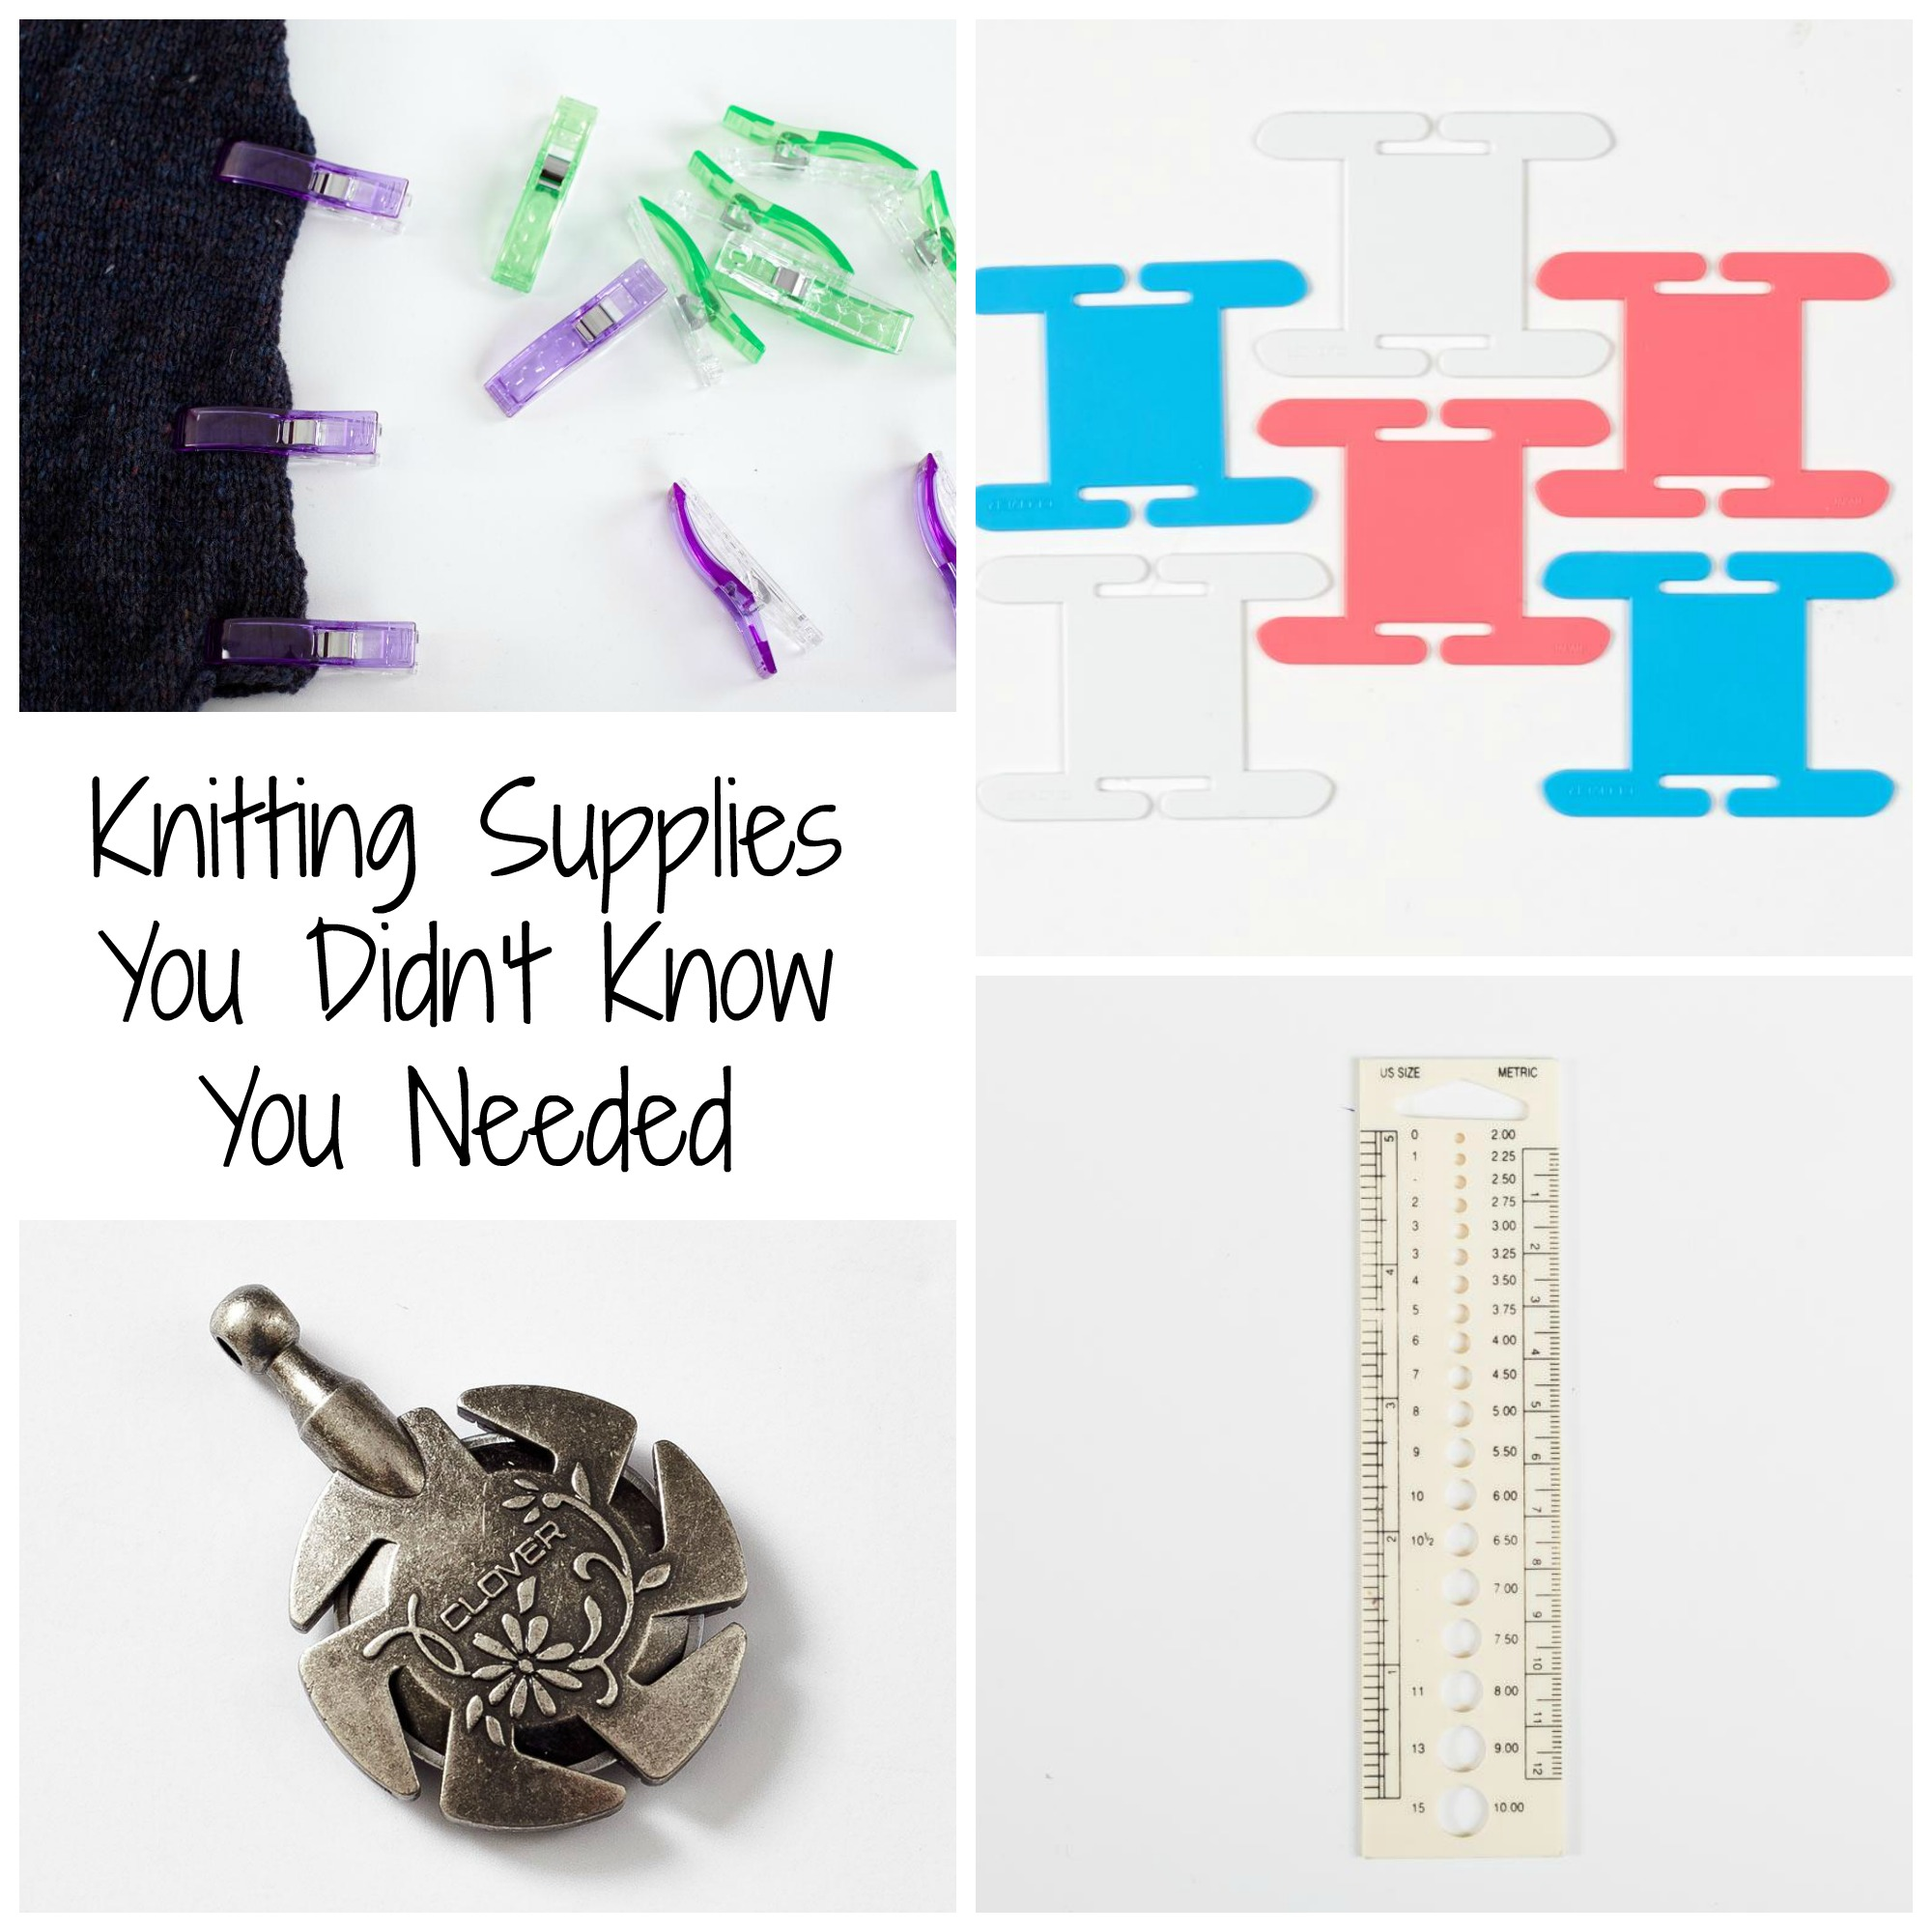 Knitting Supplies You Didn't Know You Needed